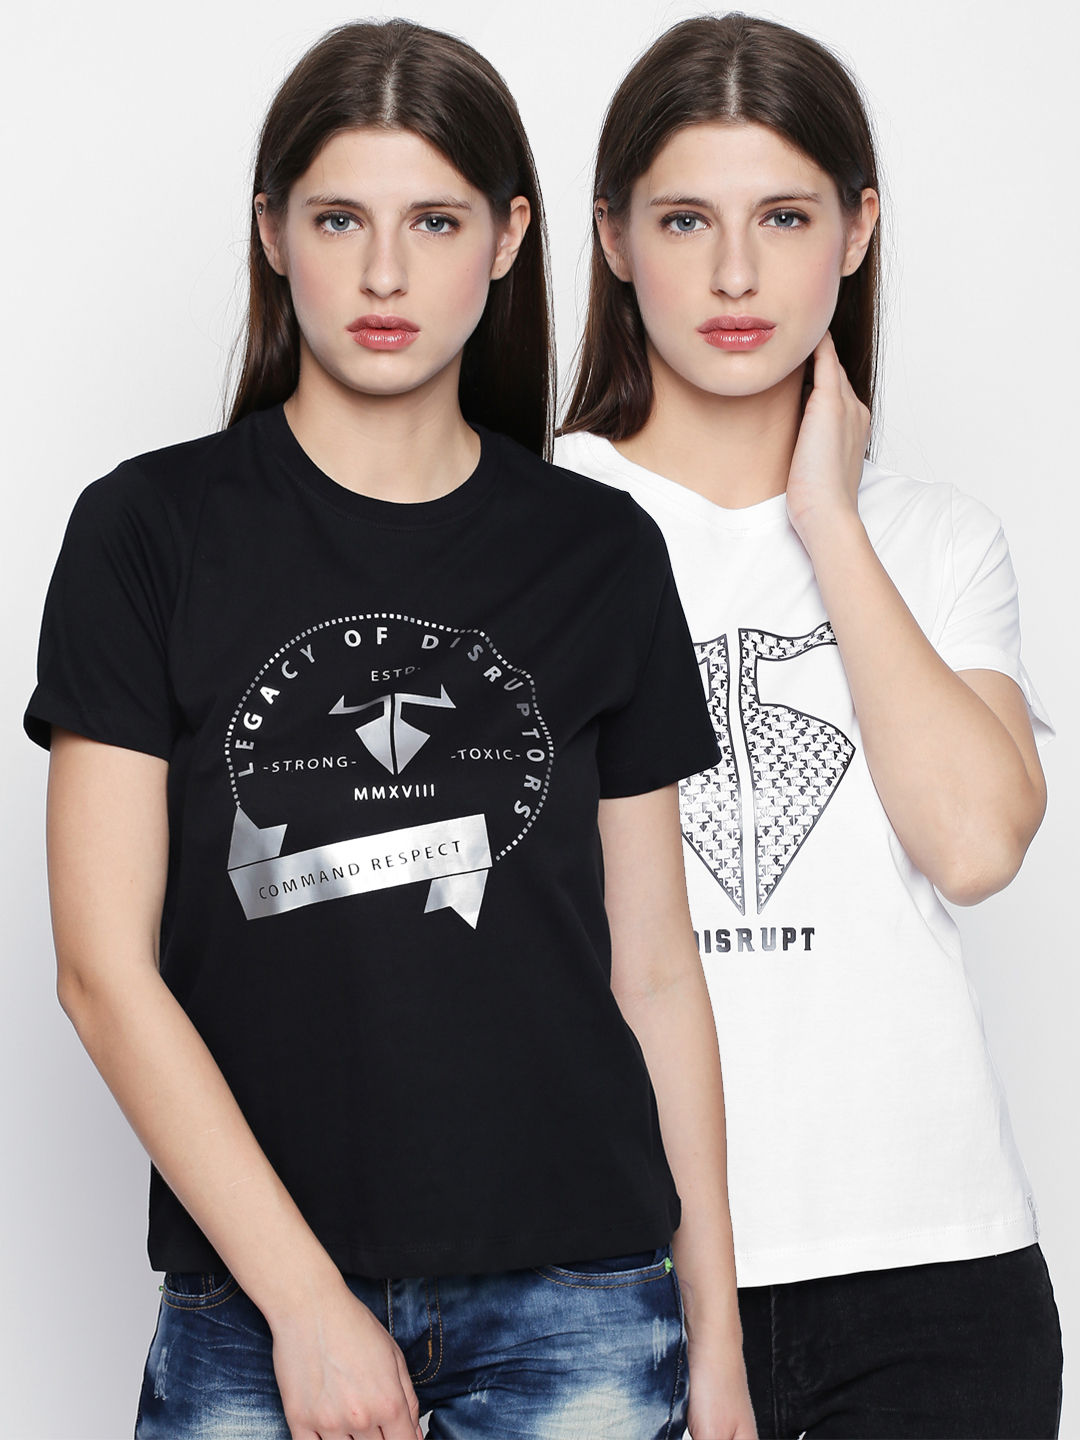 Disrupt Cotton Graphic Print Half Sleeve T-Shirt For Women's